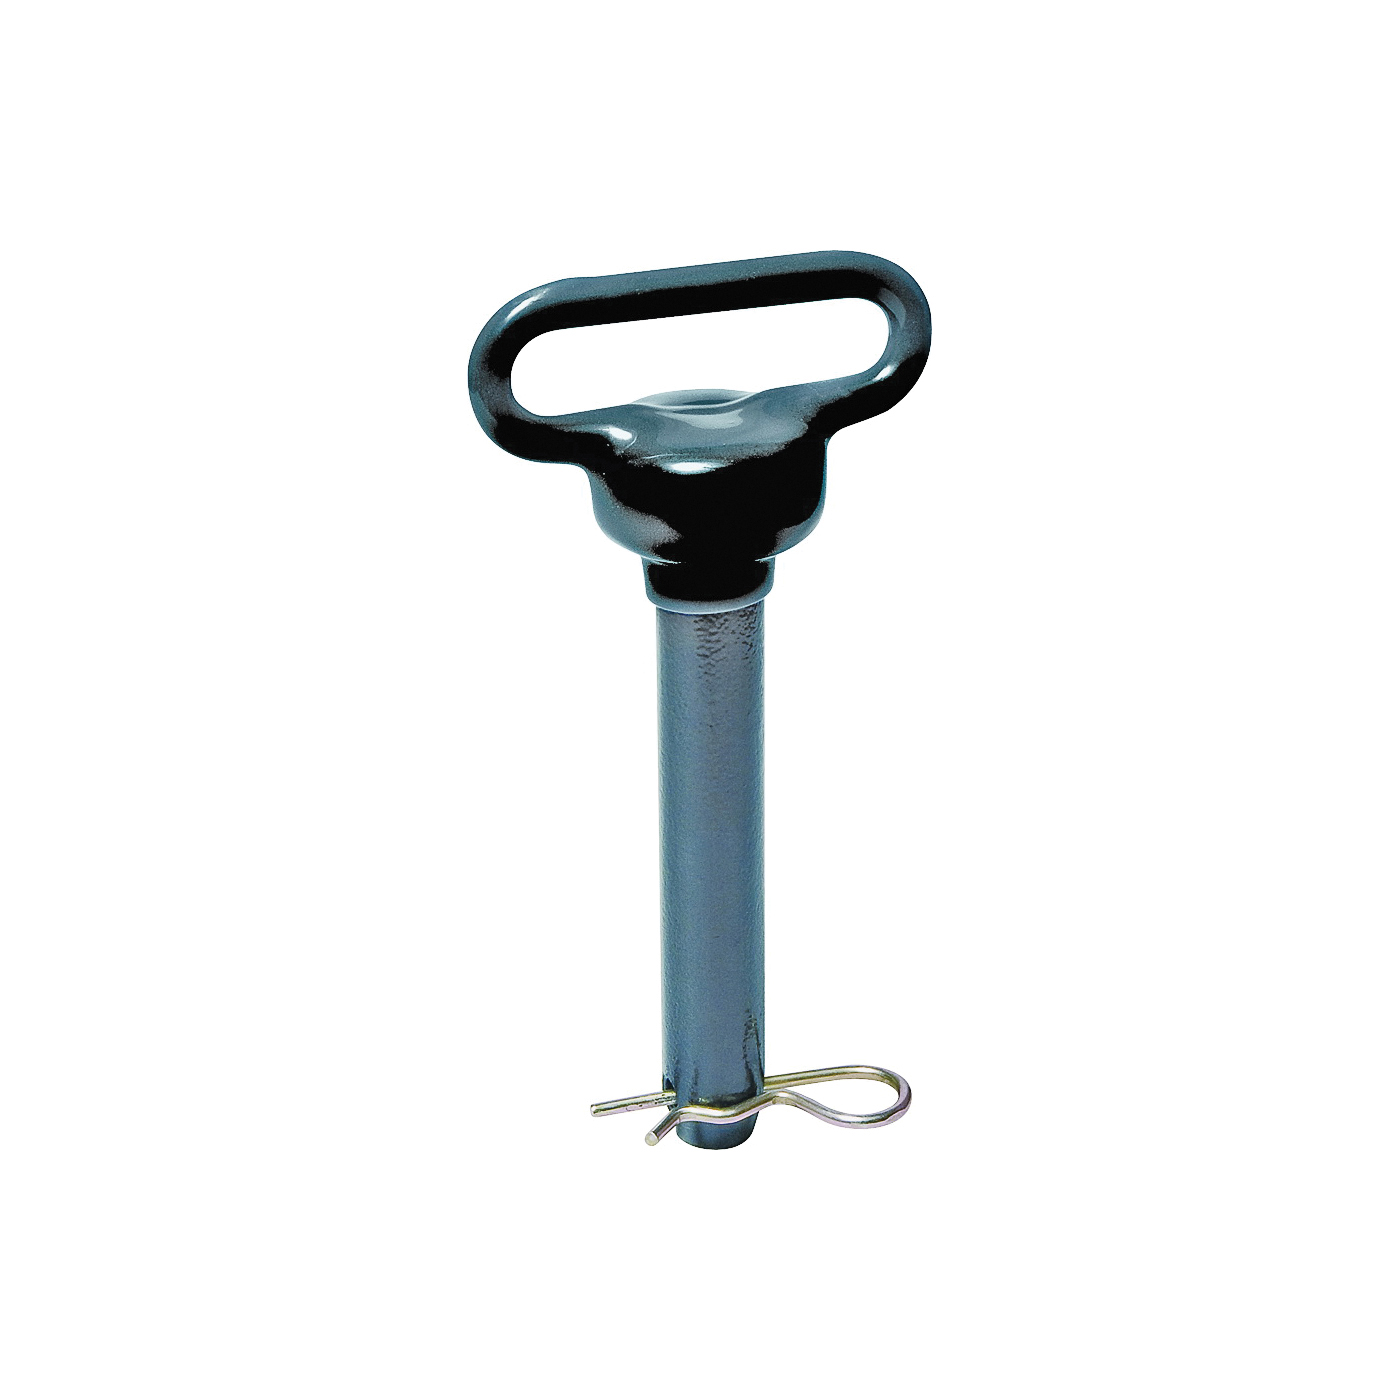 Picture of REESE TOWPOWER 7031700 Clevis Pin, 1 in Dia Pin, 4-3/4 in OAL, Steel